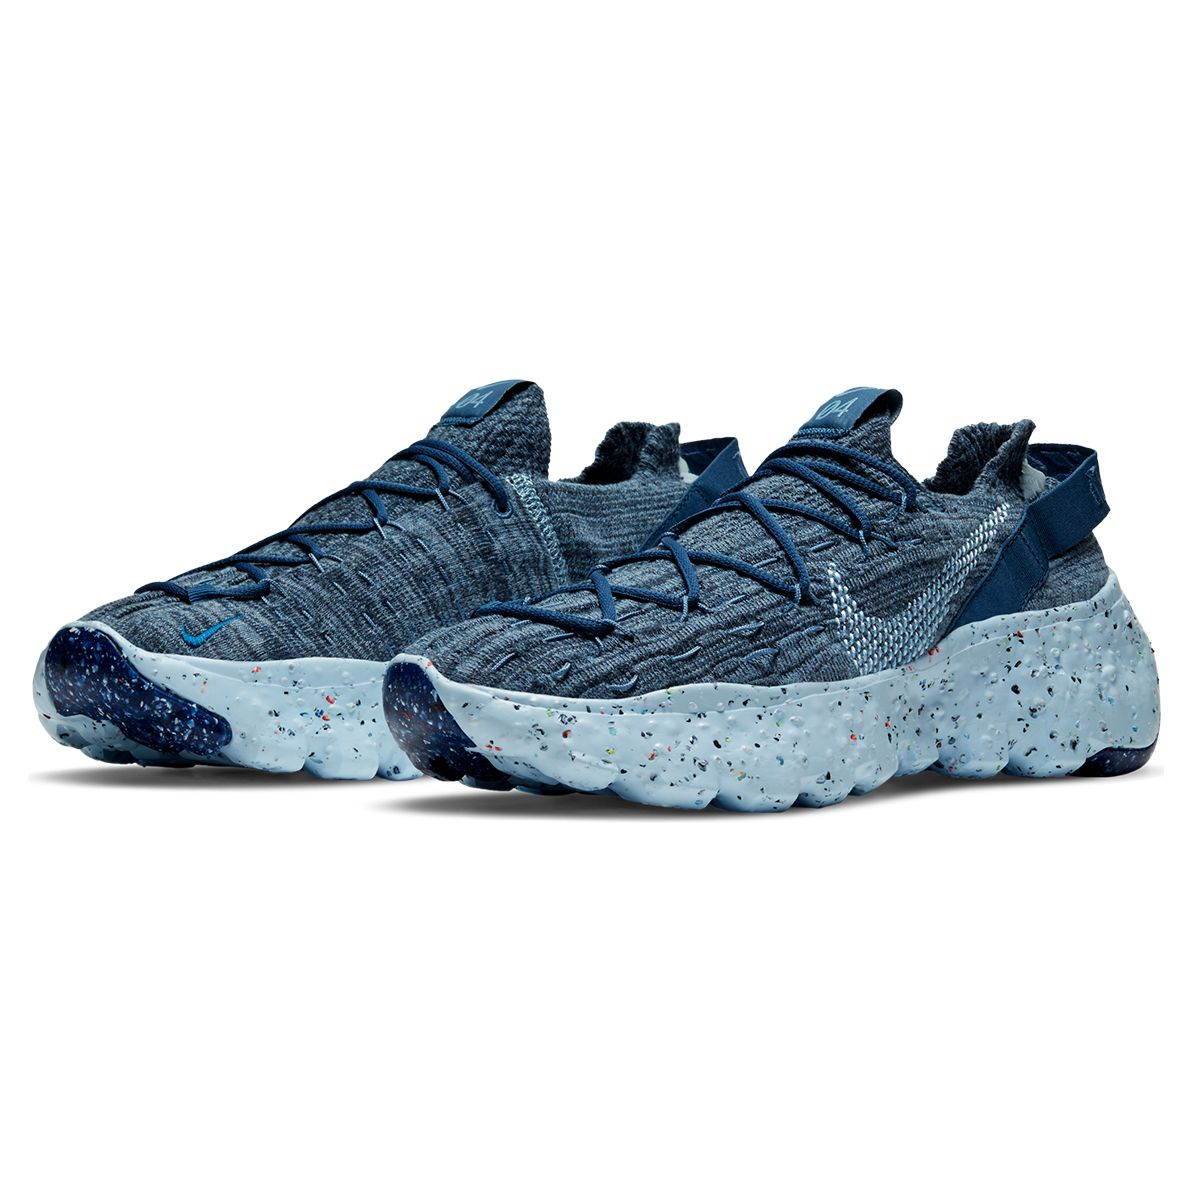 NIKE SPACE HIPPIE 04 / 400 : MYSTIC NAVY/CHAMBRAY BLUE